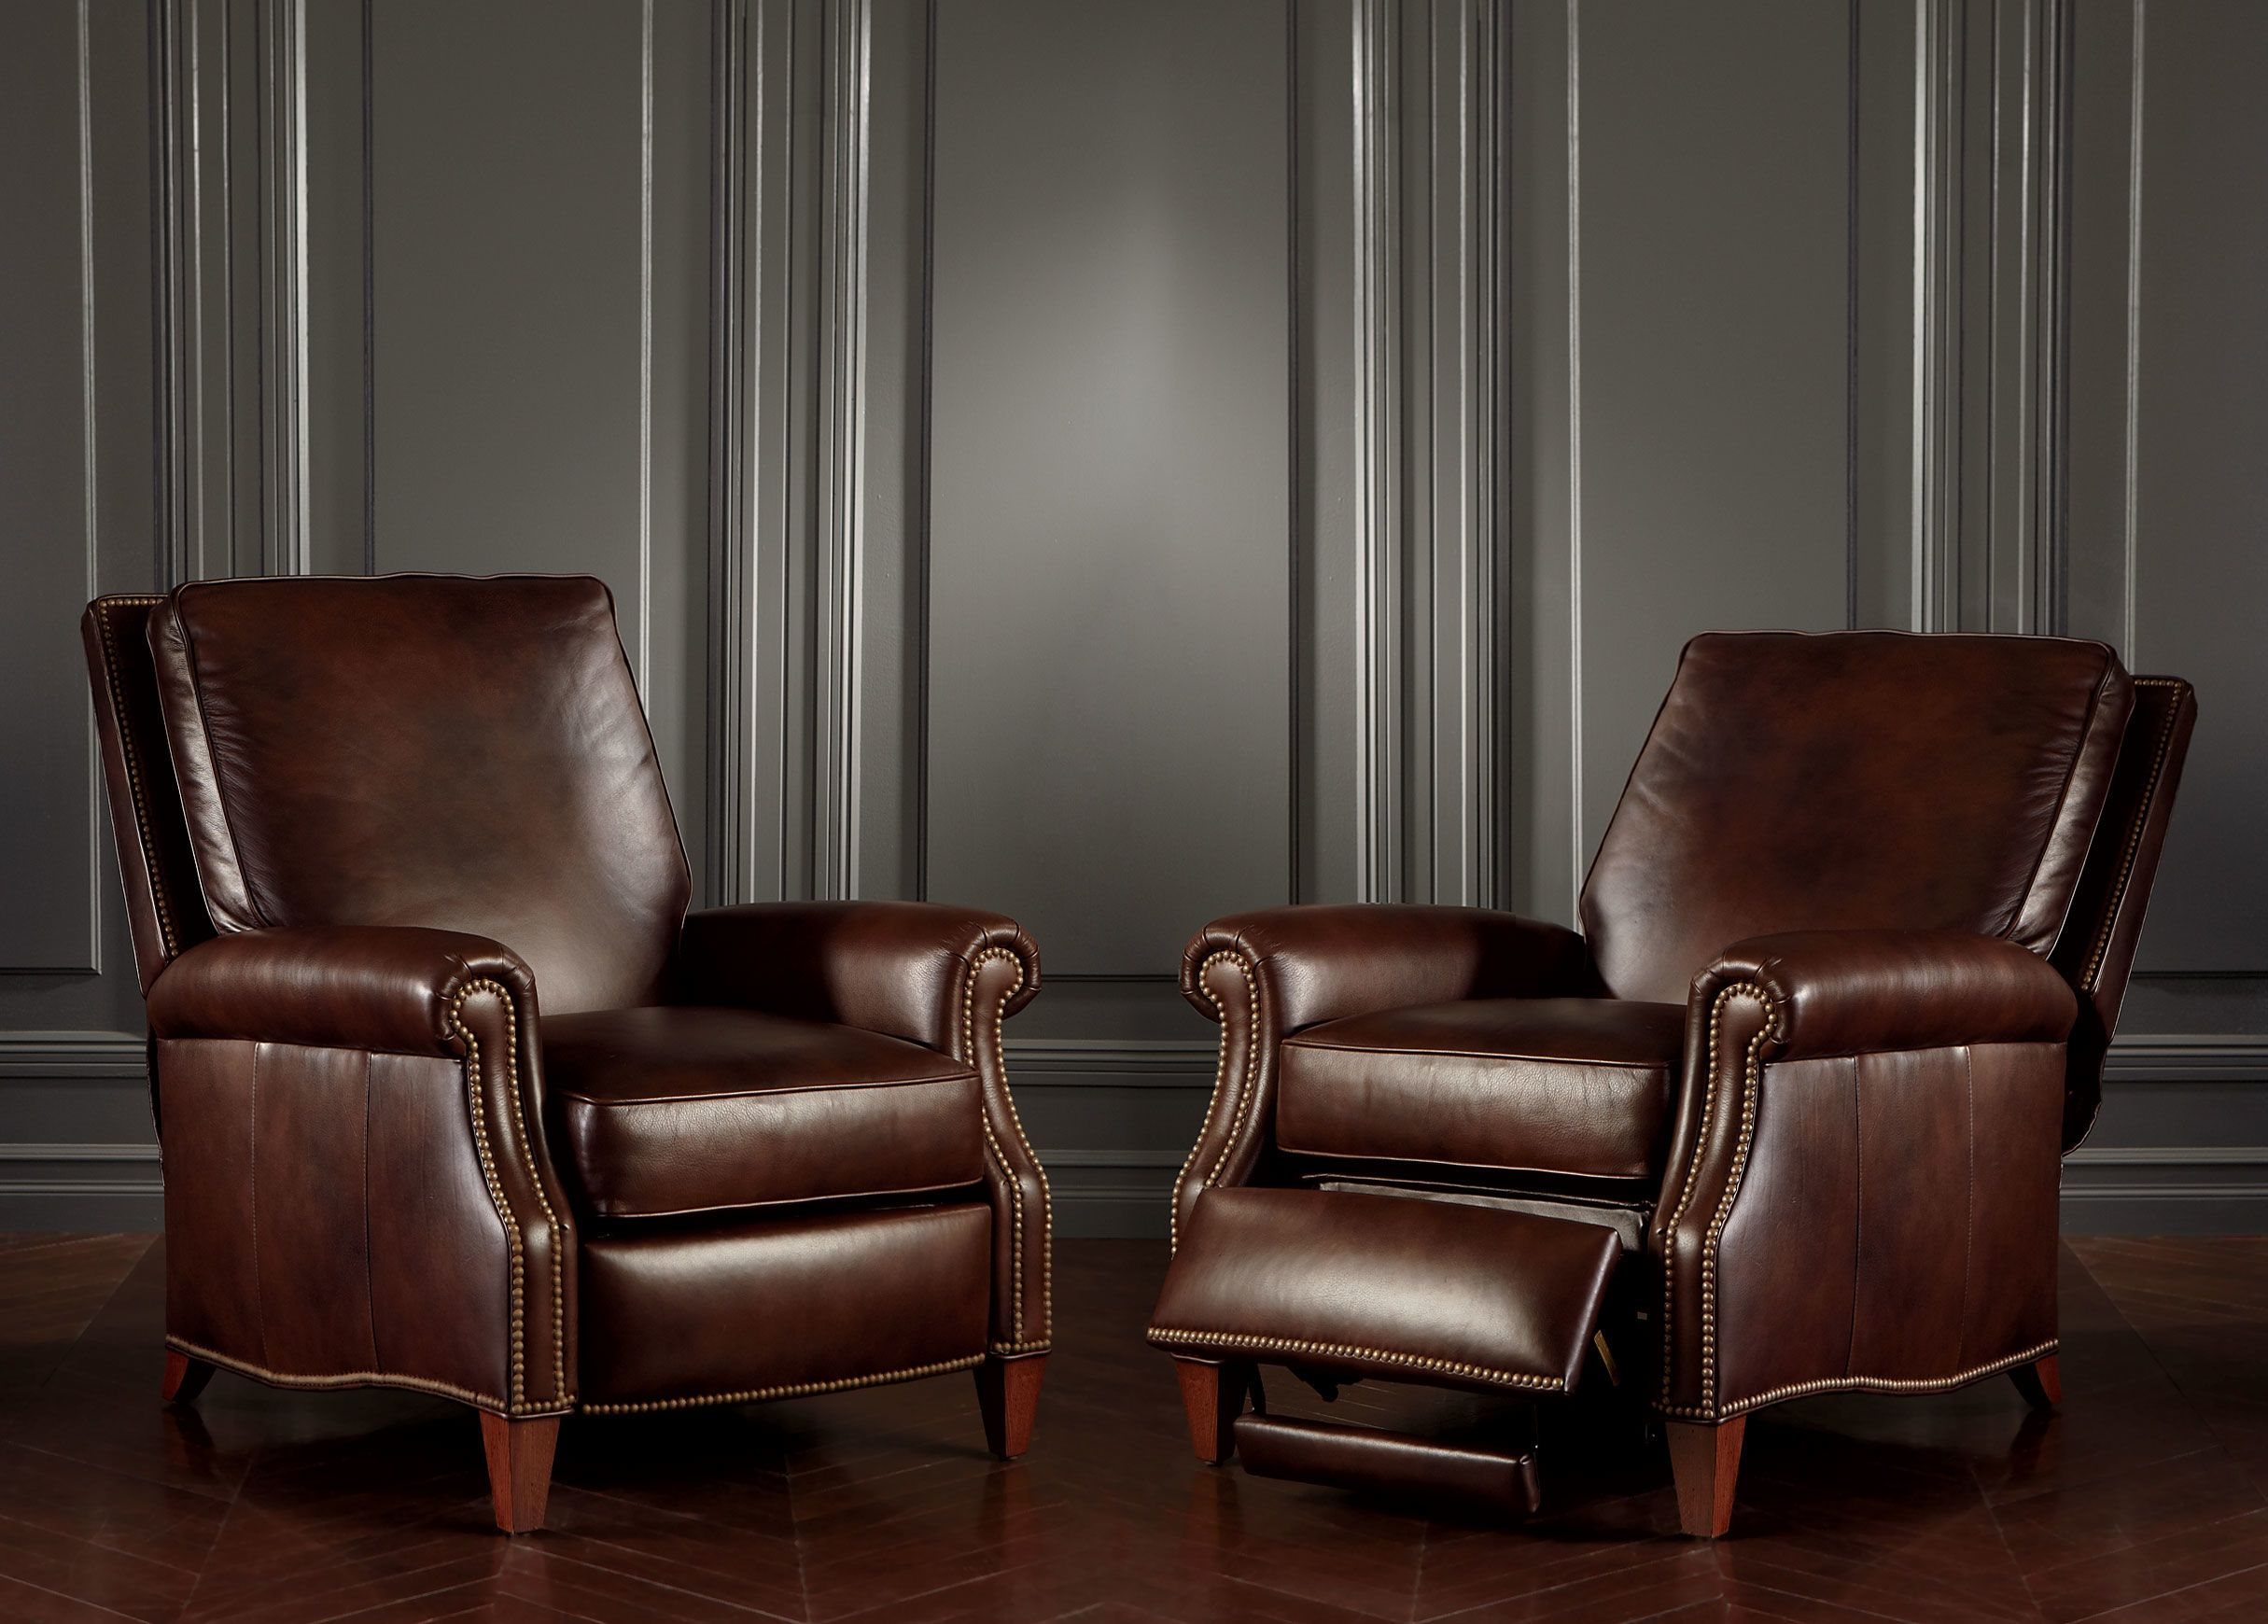 Awesome Ethan Allen Colburn Leather Recliner Omni Brown Comes In Short Links Chair Design For Home Short Linksinfo